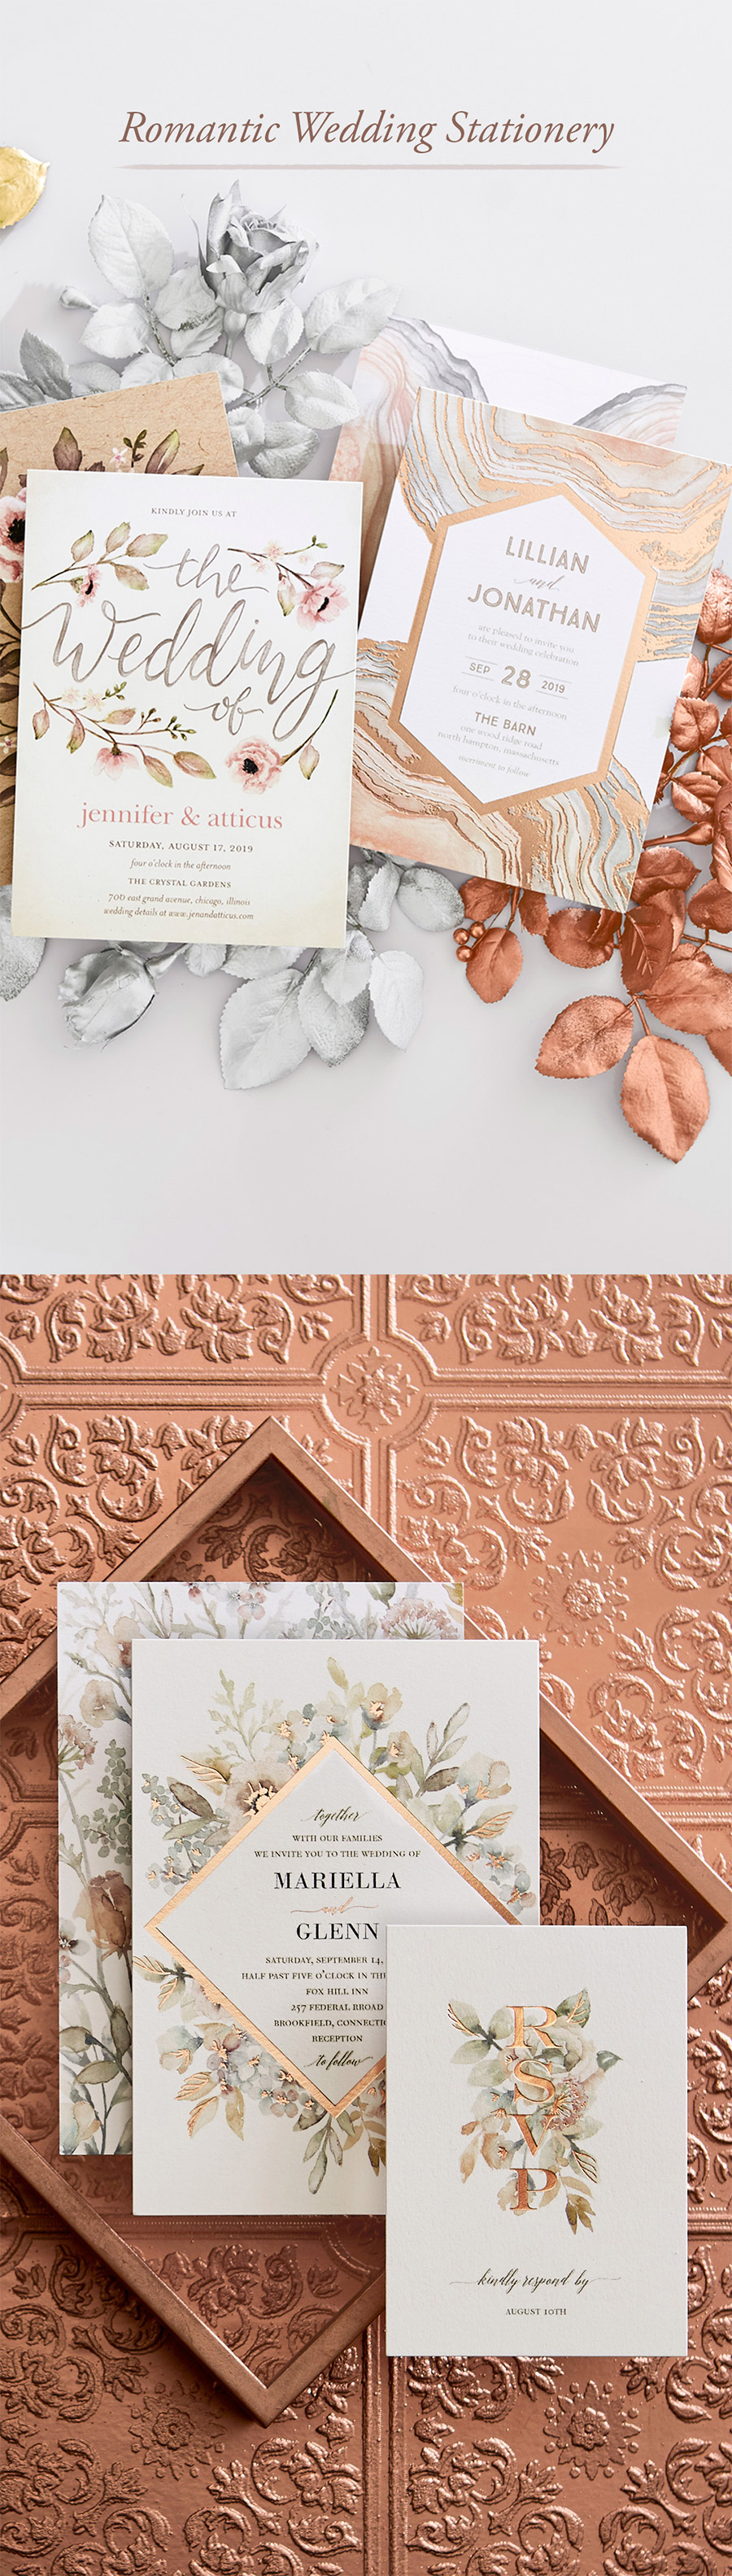 Discover luxe wedding stationery and more at The Wedding